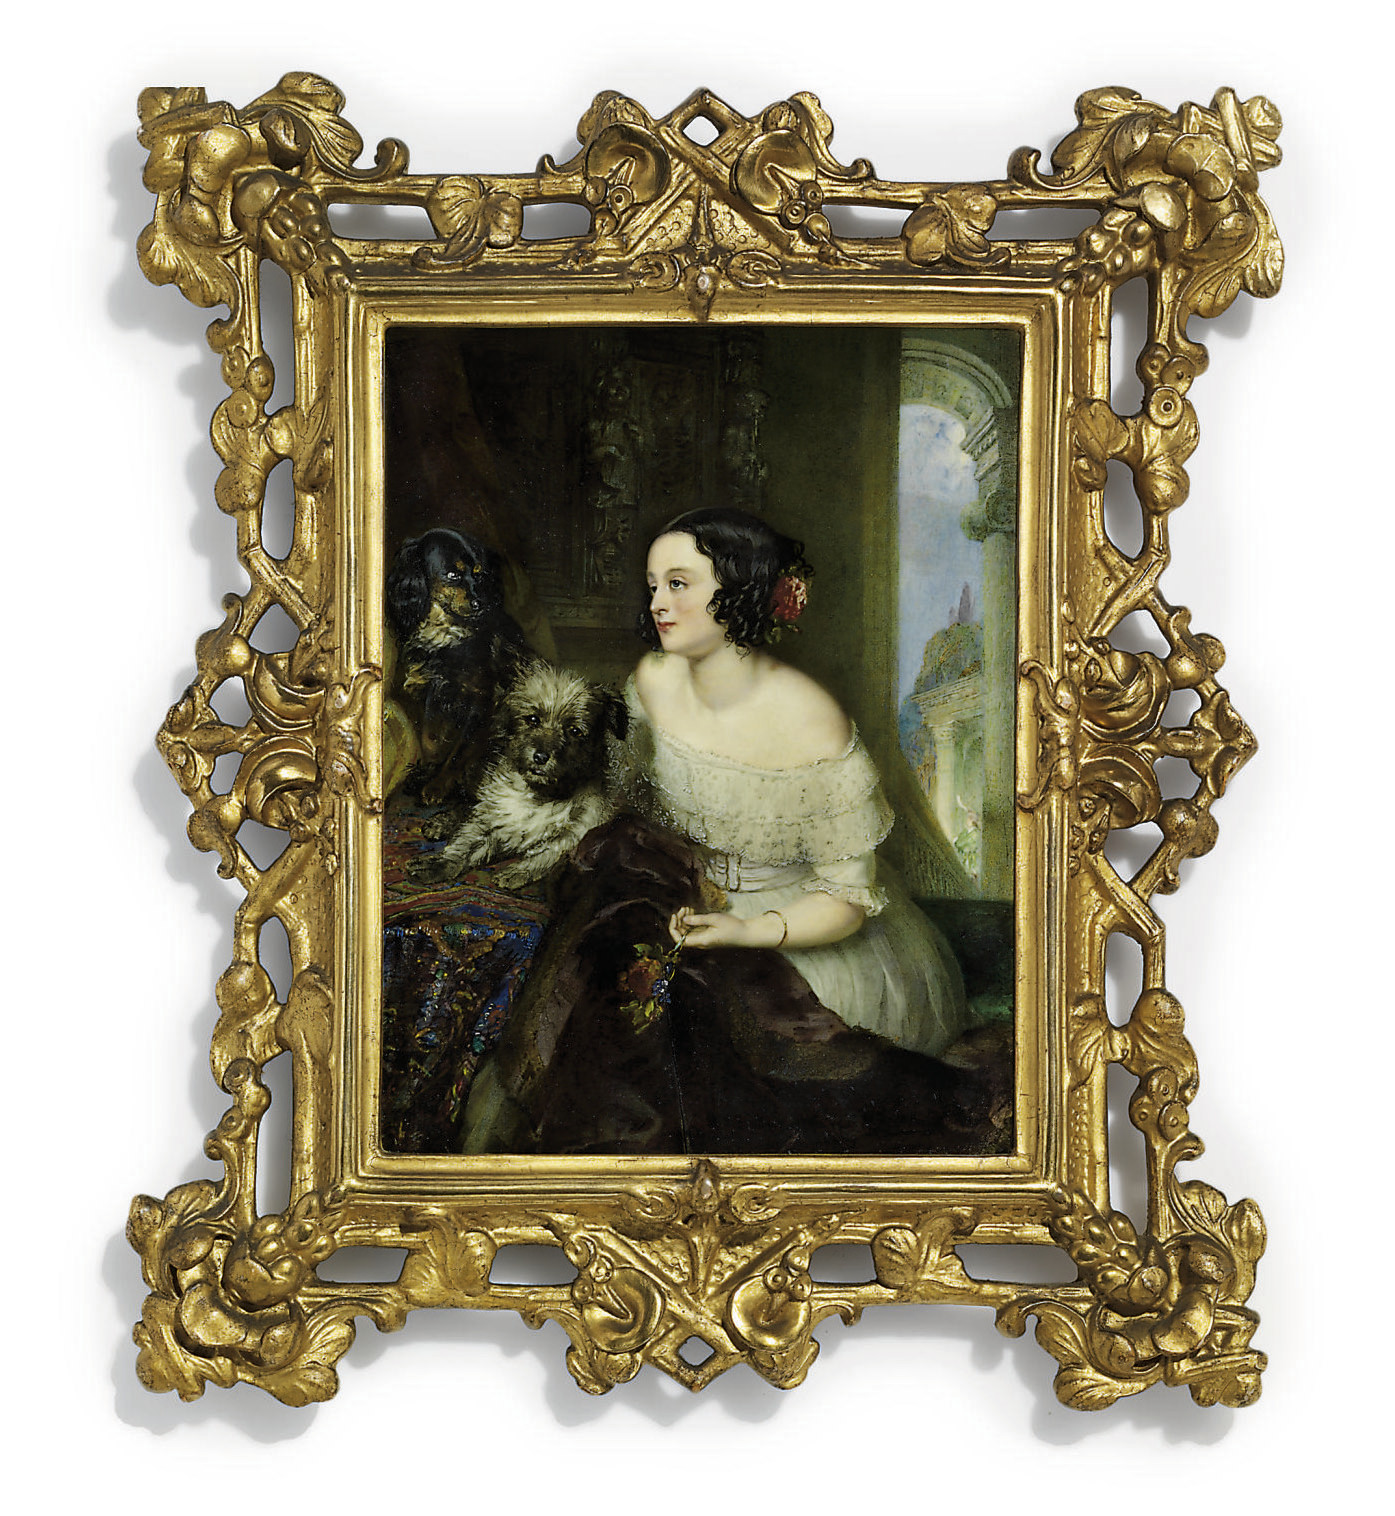 A lady, in white décolleté dress trimmed with white lace at neckline and cuff, gold buckled sash, fur-lined cloak across her lap, gold bracelet on her left arm, pink flowers adorning her dark upswept hair, holding a nosegay of flowers in her left hand, seated on a green ledge next to a terrier and dachshund on a tapestry covered table; curtain and classicizing portico background